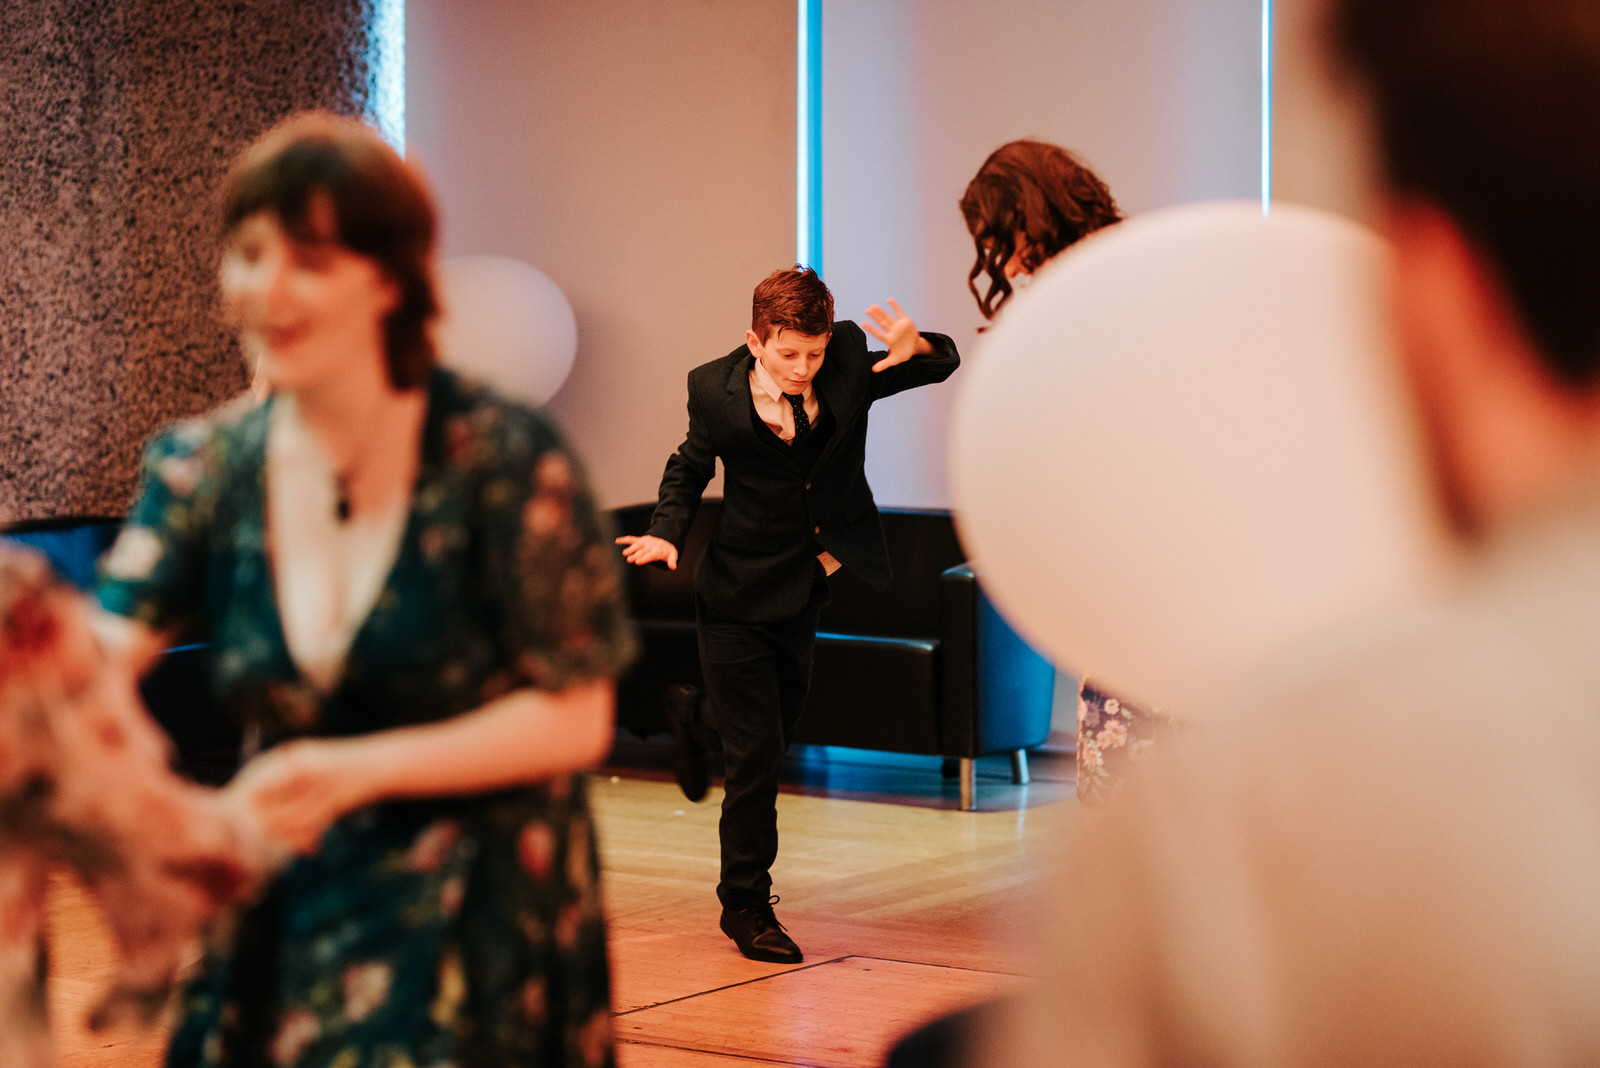 Young guest performs cool dance move as the party begins